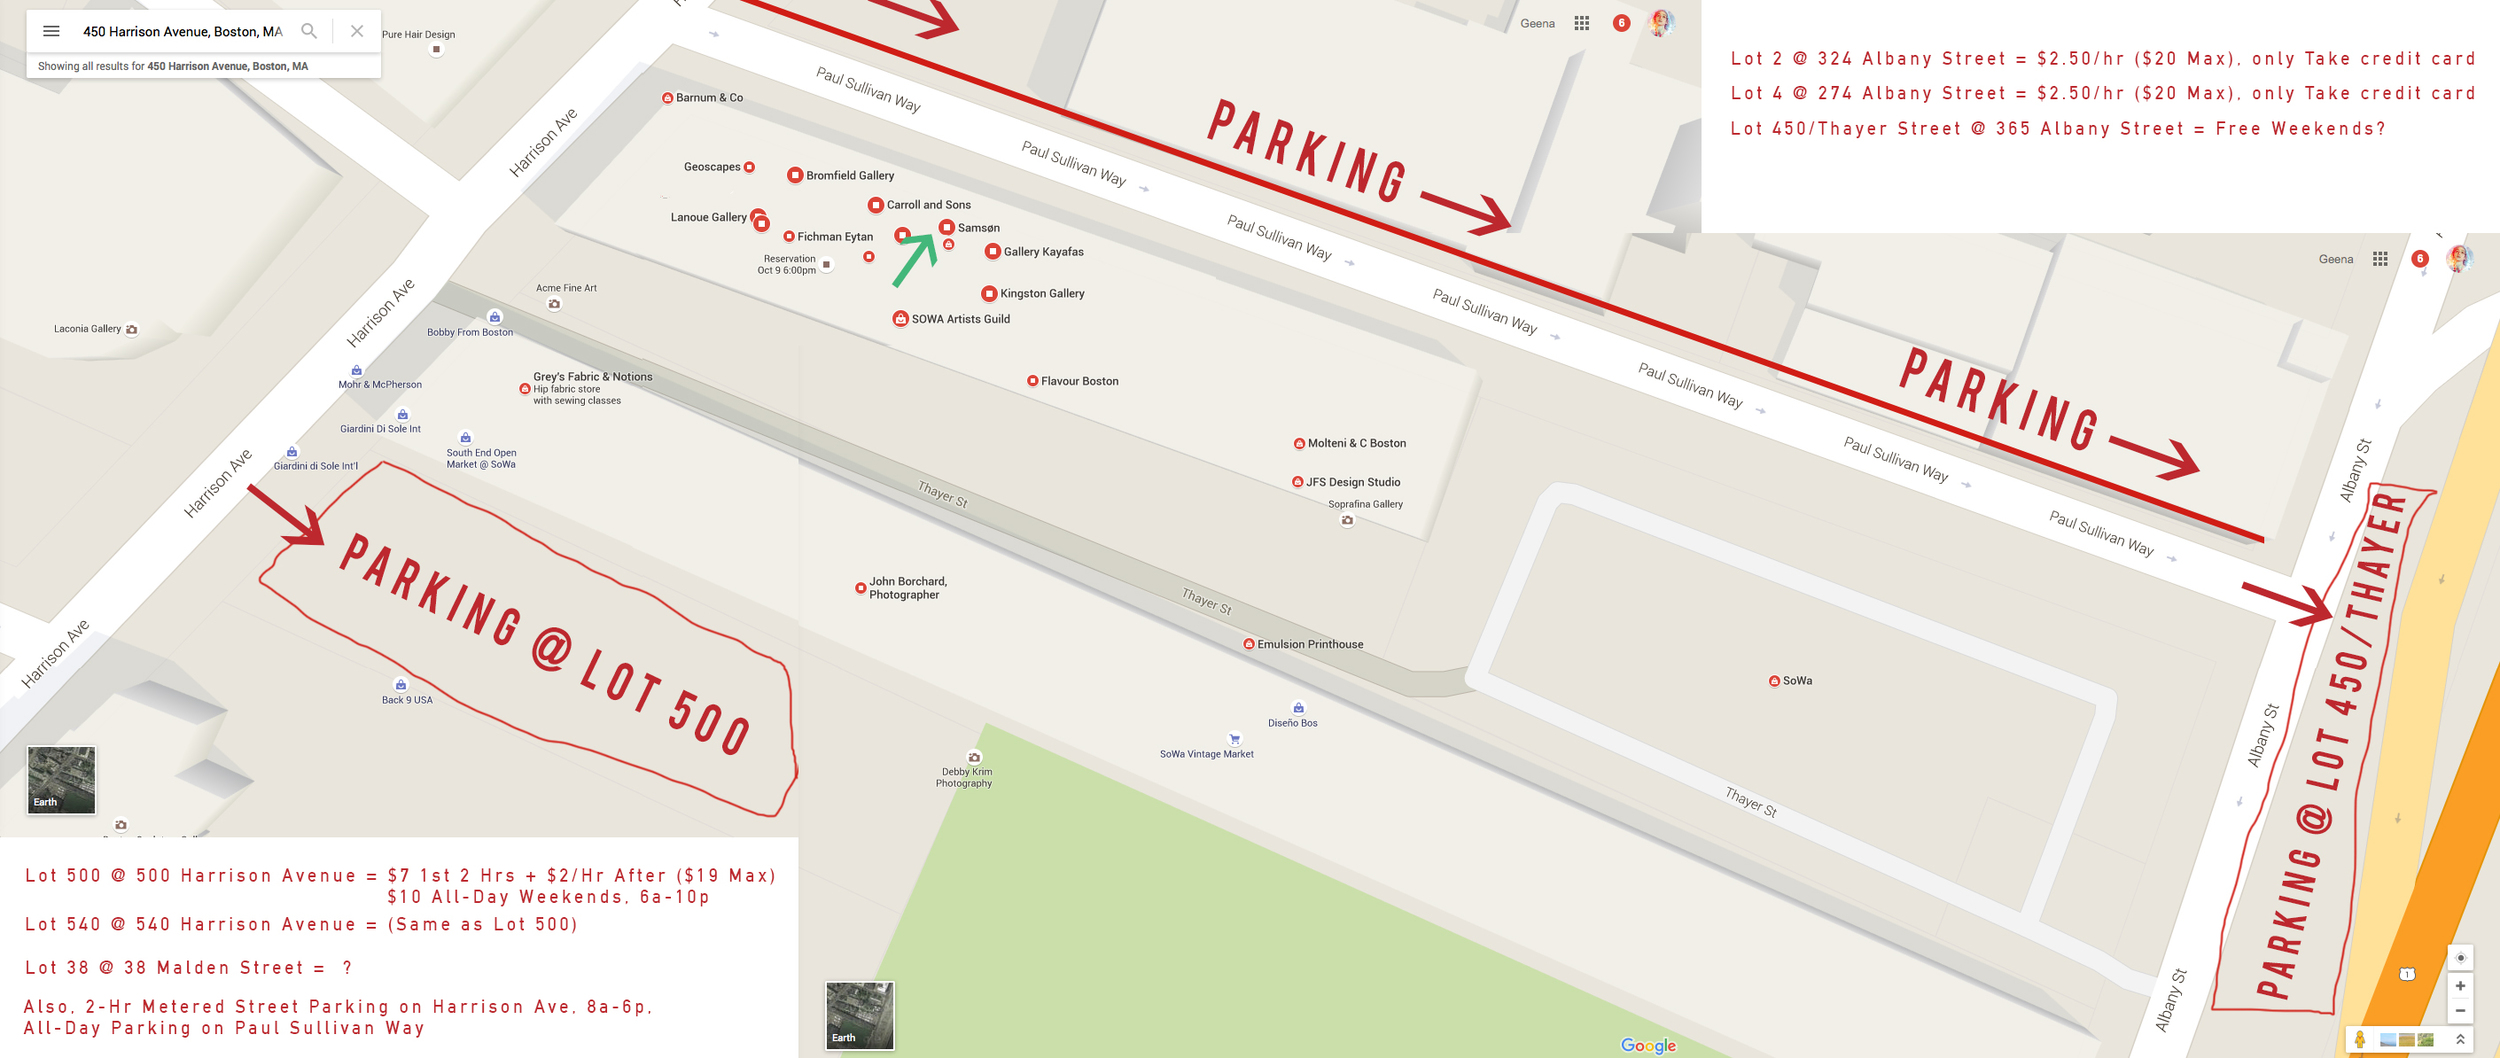 Parking map of SoWa district in Boston.  Click image to enlarge.